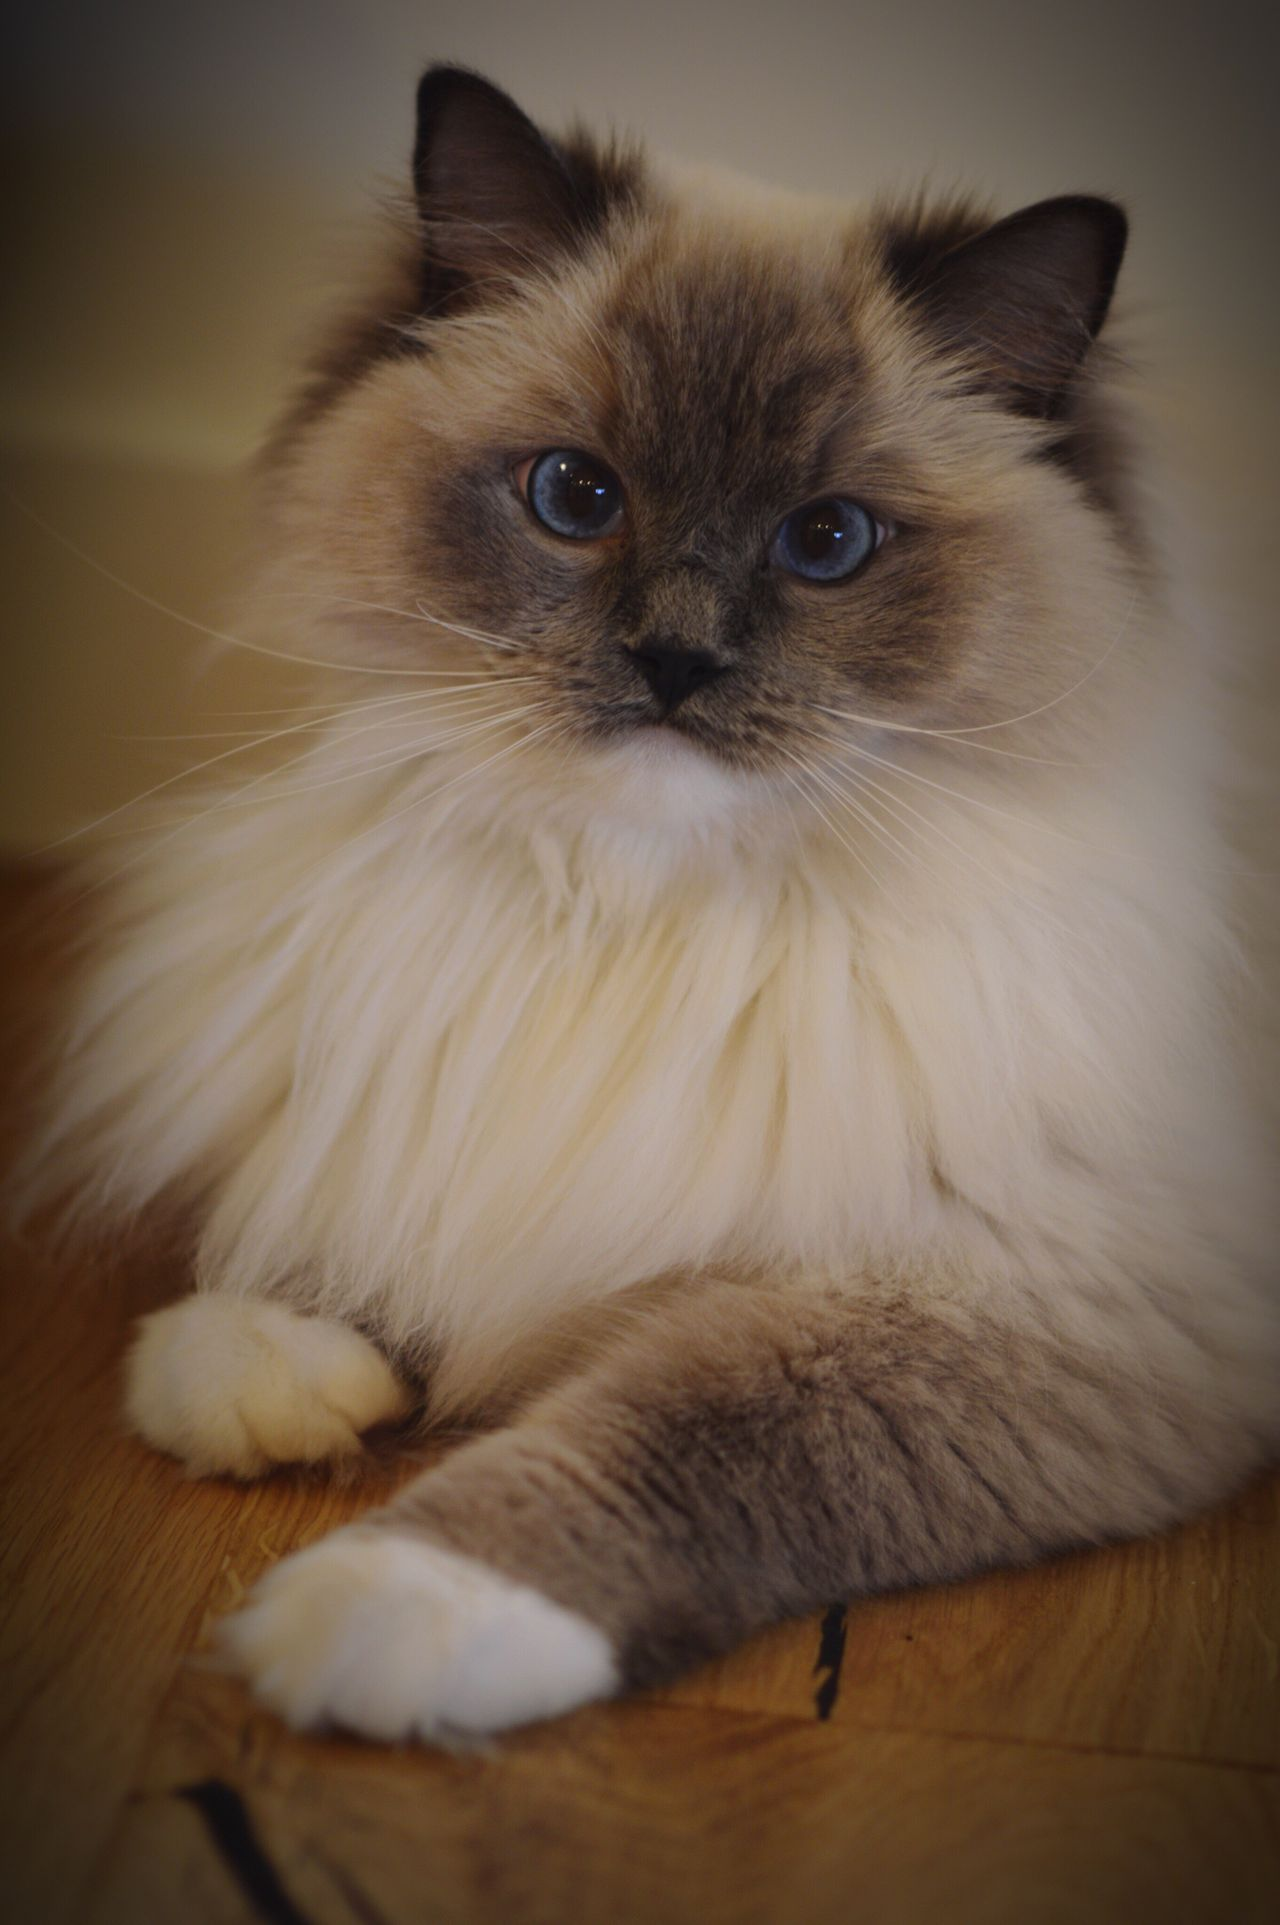 Pets Domestic Animals Domestic Cat One Animal Feline Whisker Portrait Ragdoll Cat Coffee Color Coffee Colour Beige Tones Beige Beige And Blue